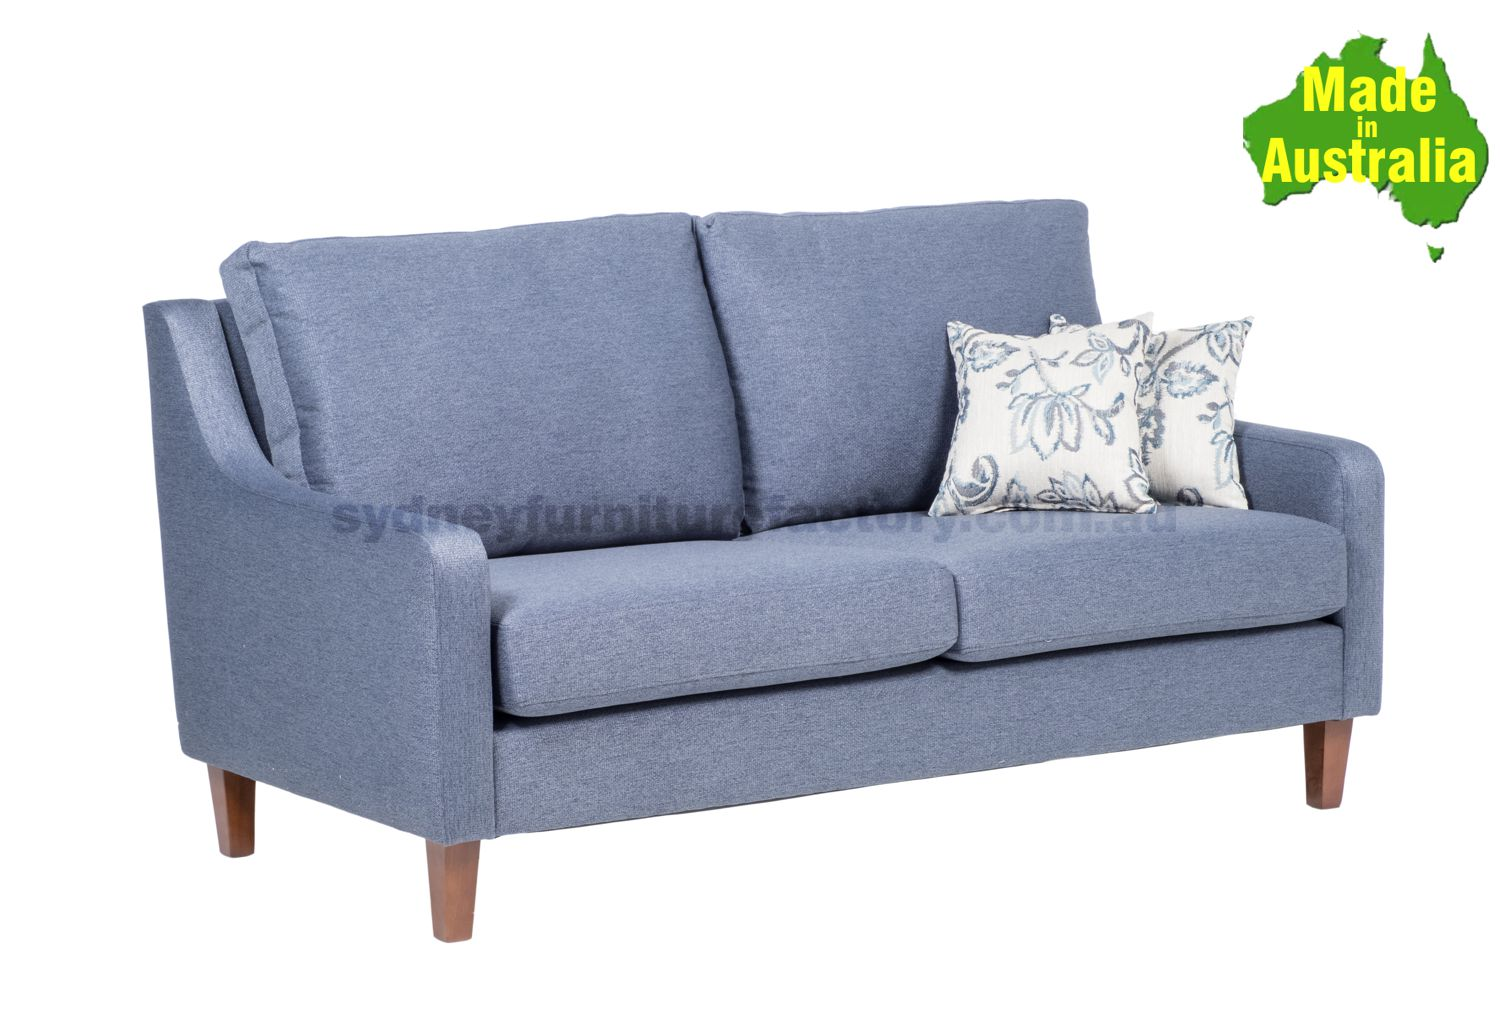 Capri Sofa, Sydney Furniture Factory